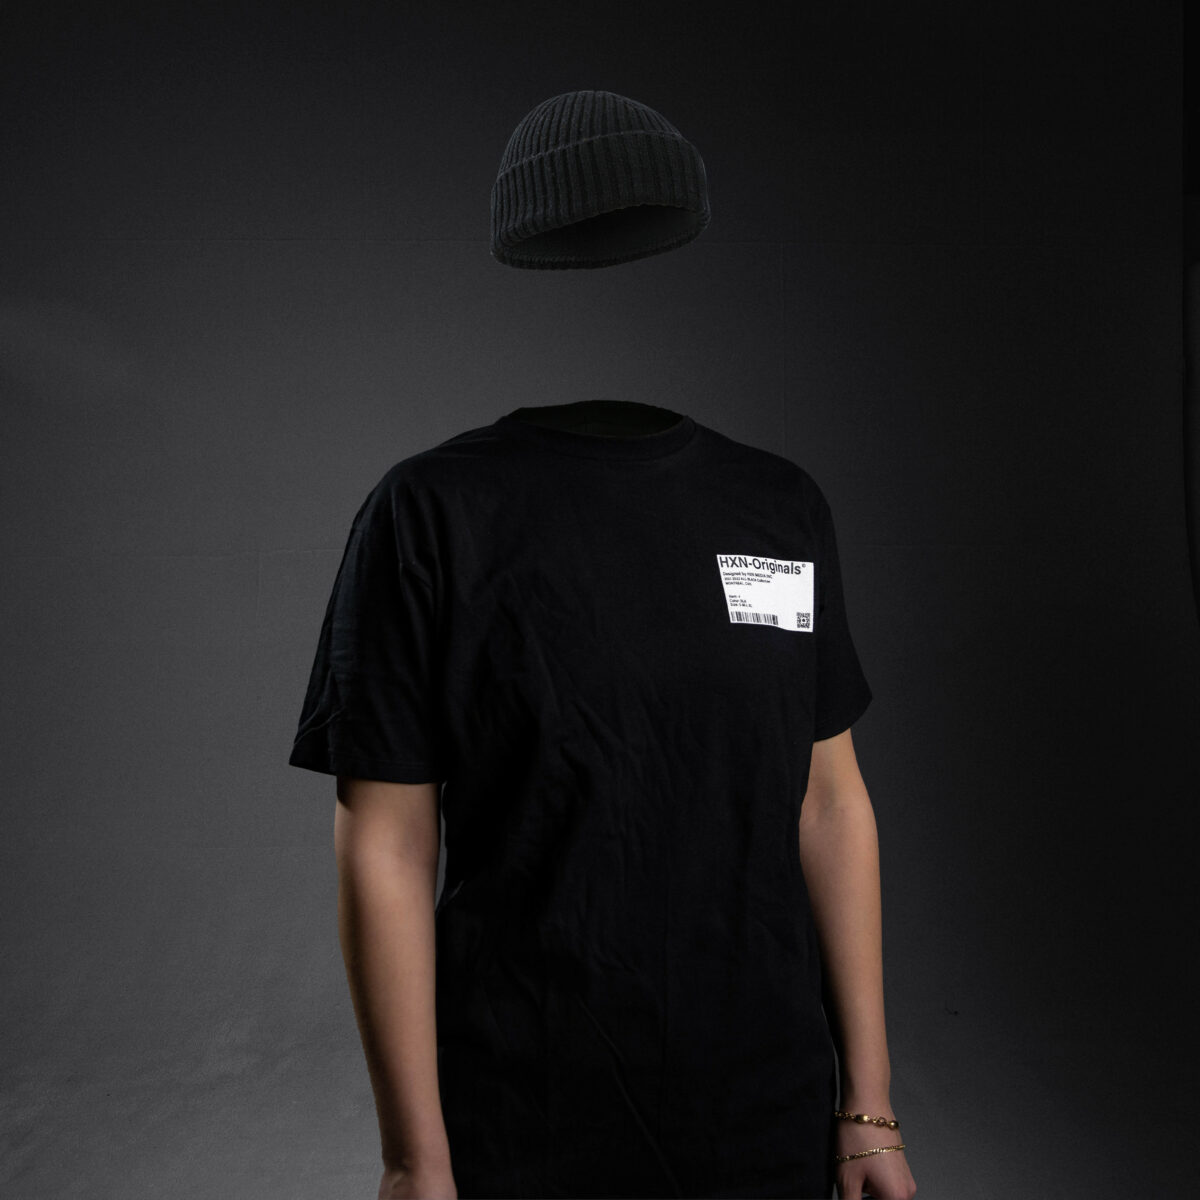 fresh out the factory t shirt hxn media